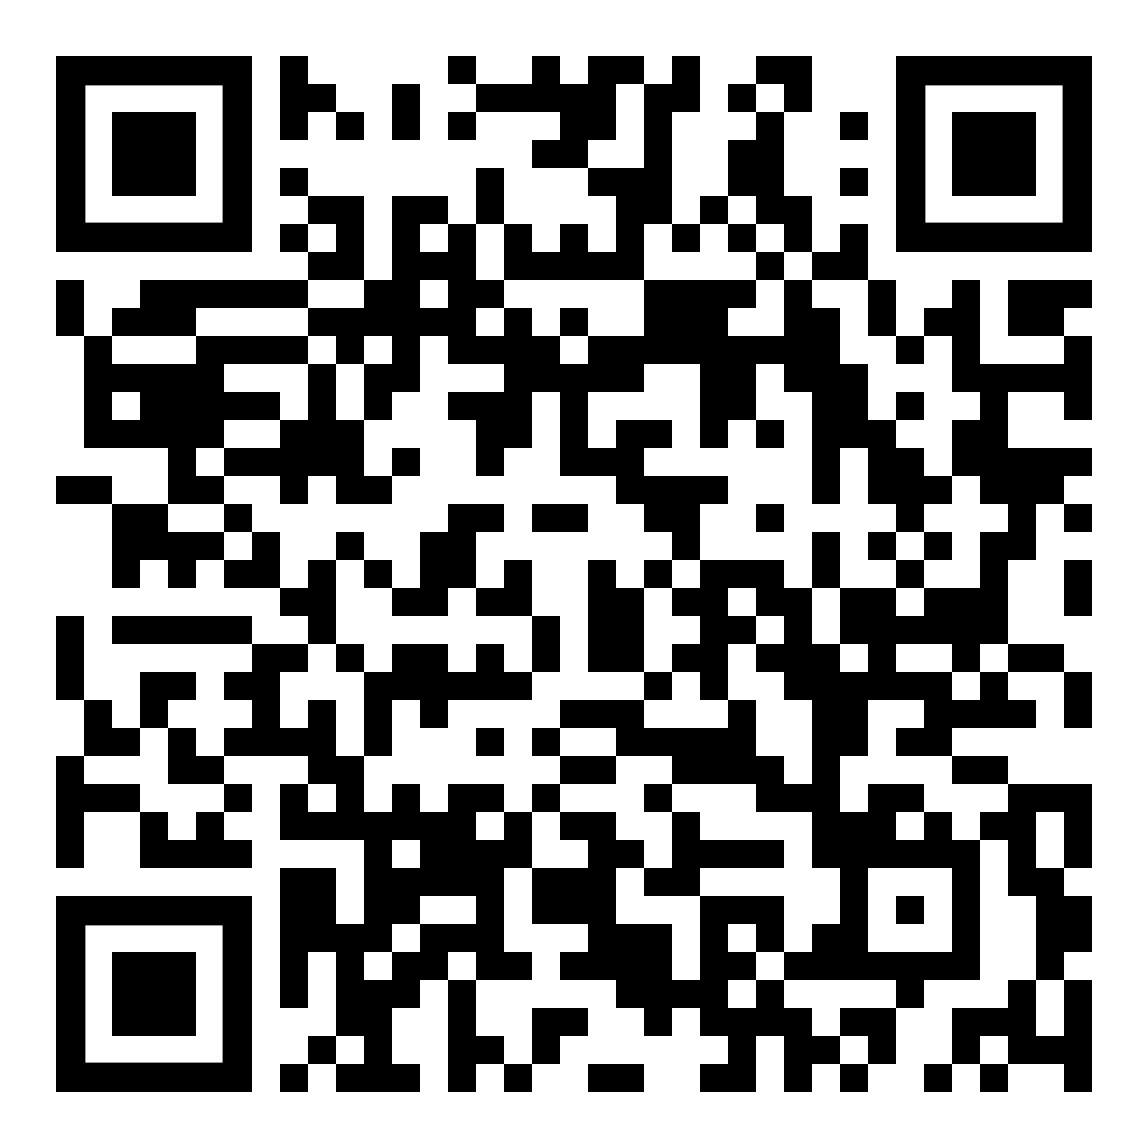 QR-Code for Vacuum Wafer Chucks Brochure